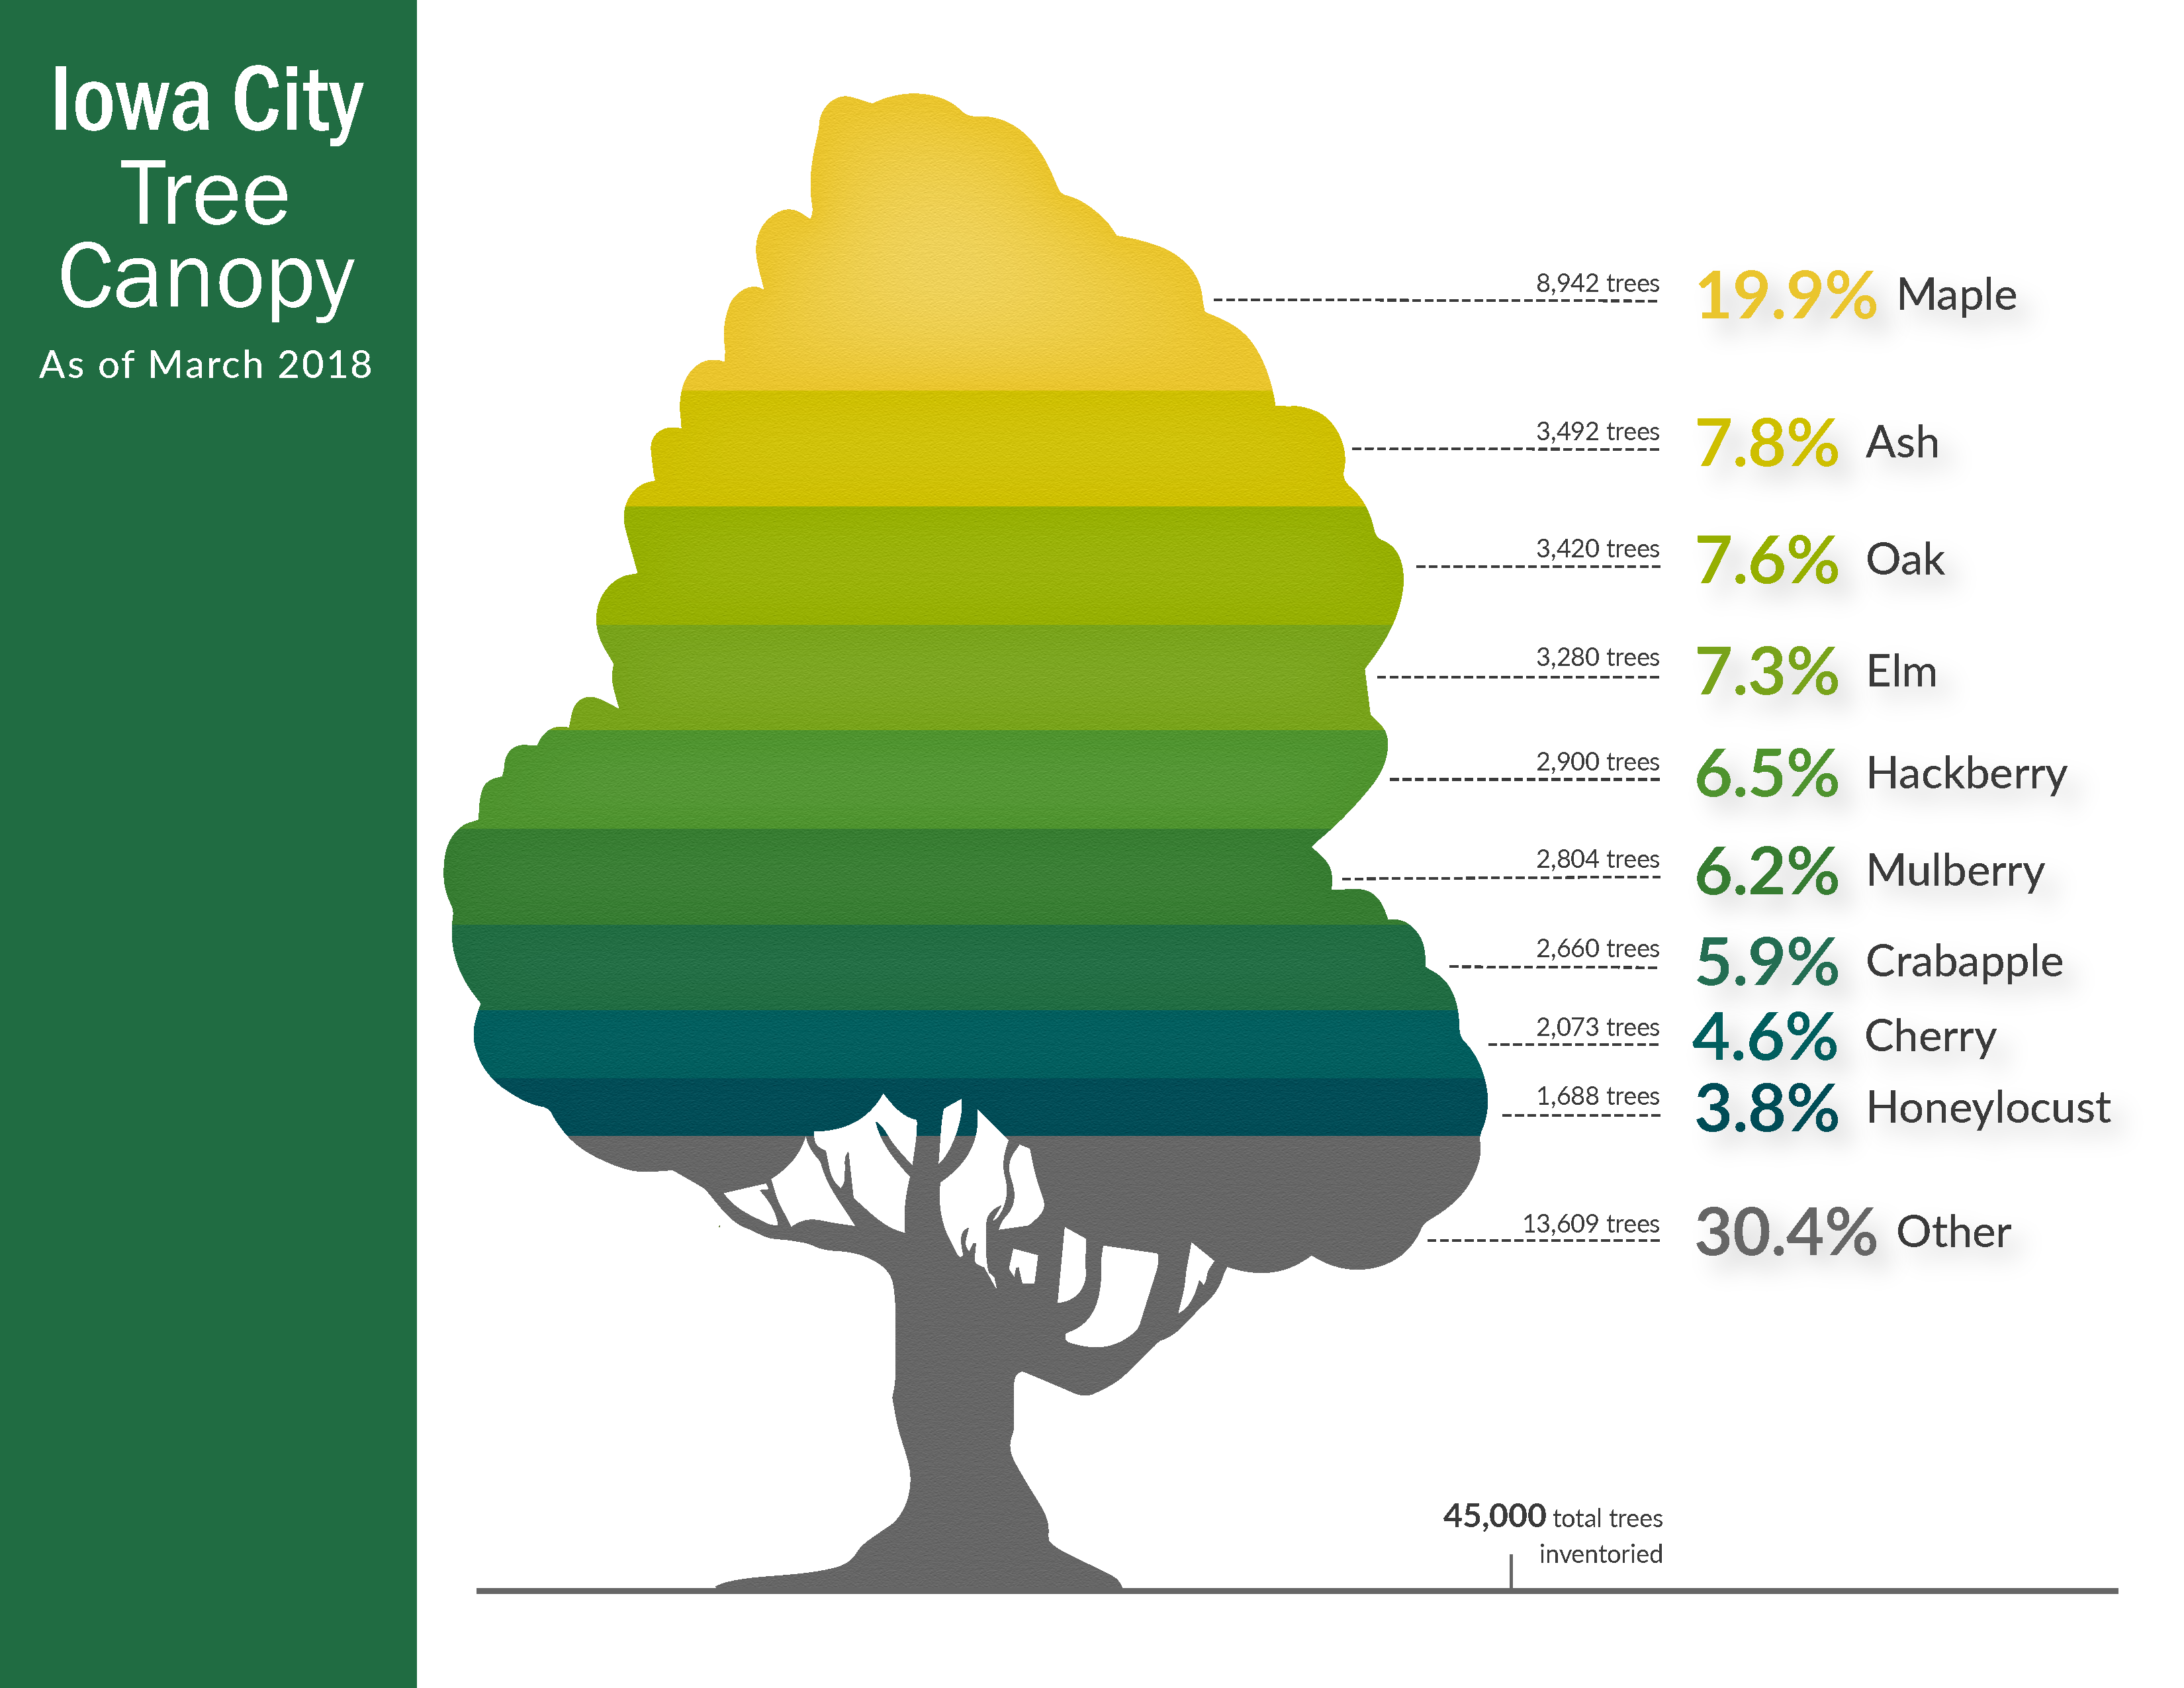 A chart of Iowa City's current tree canopy